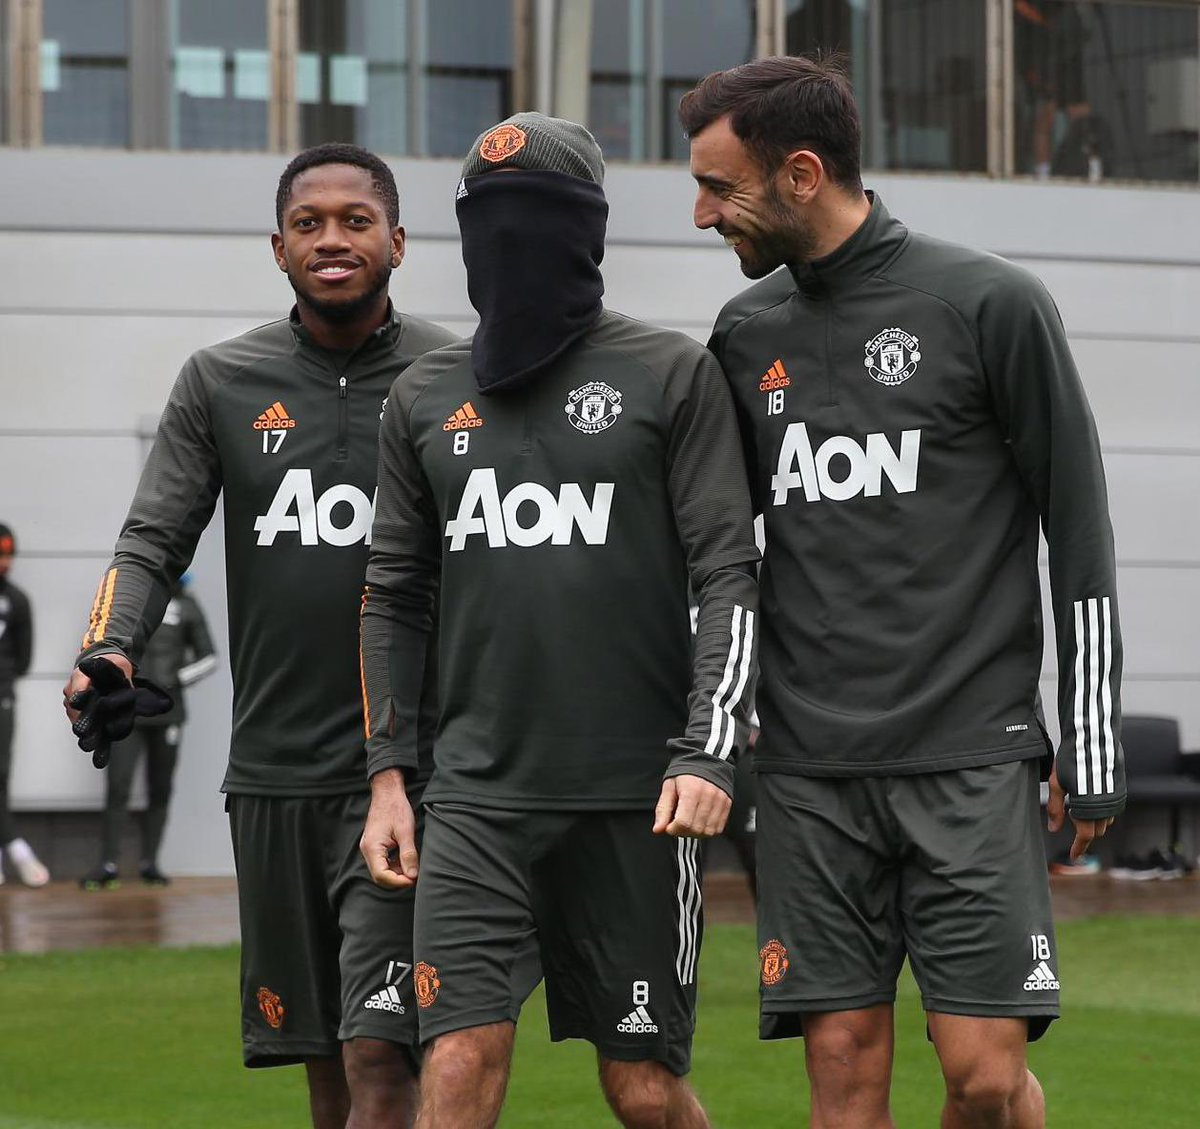 Don't forget to use your masks, right @juanmata8 ? 🤪